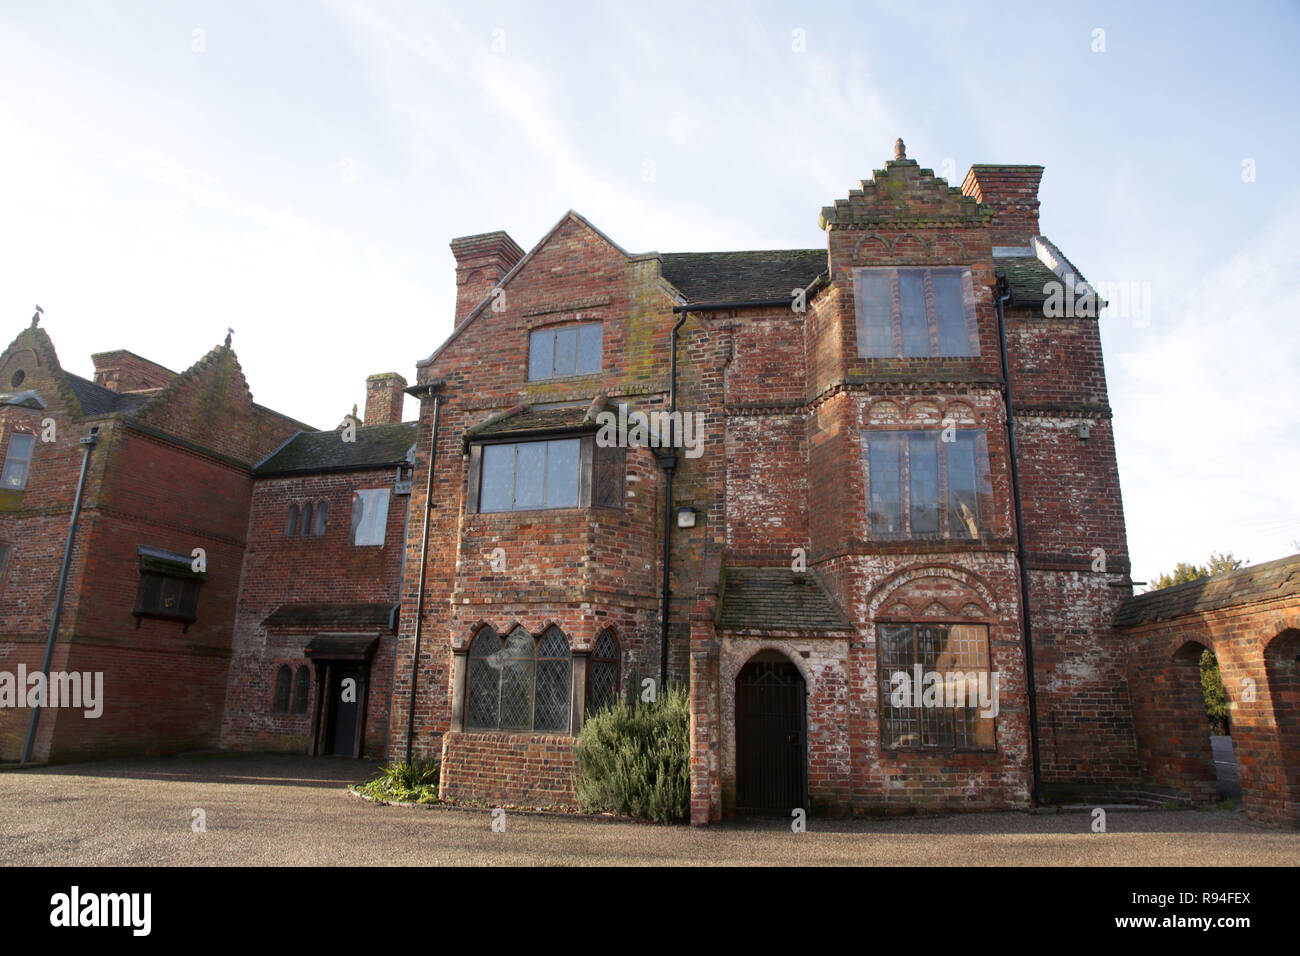 Haden old hall at Cradley Heath, Sandwell, West midlands, England, UK. - Stock Image